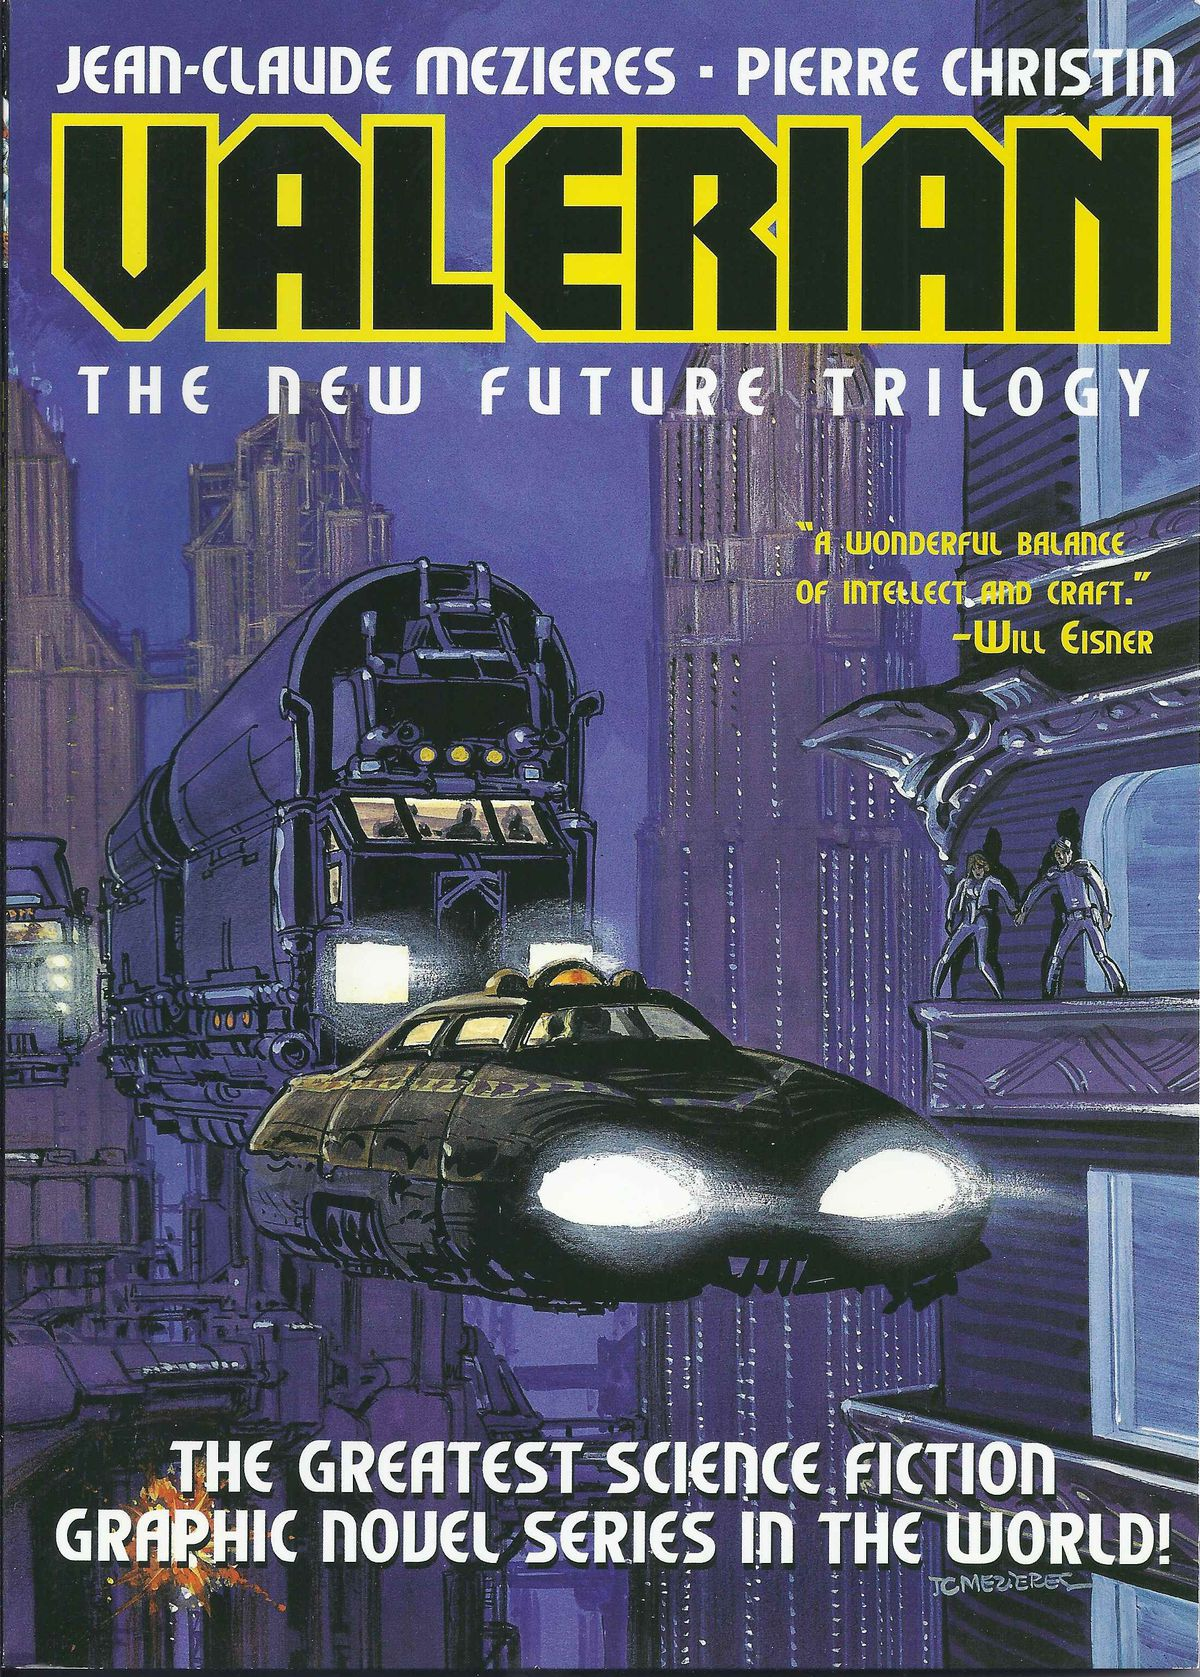 The cover of Valérian and Laureline